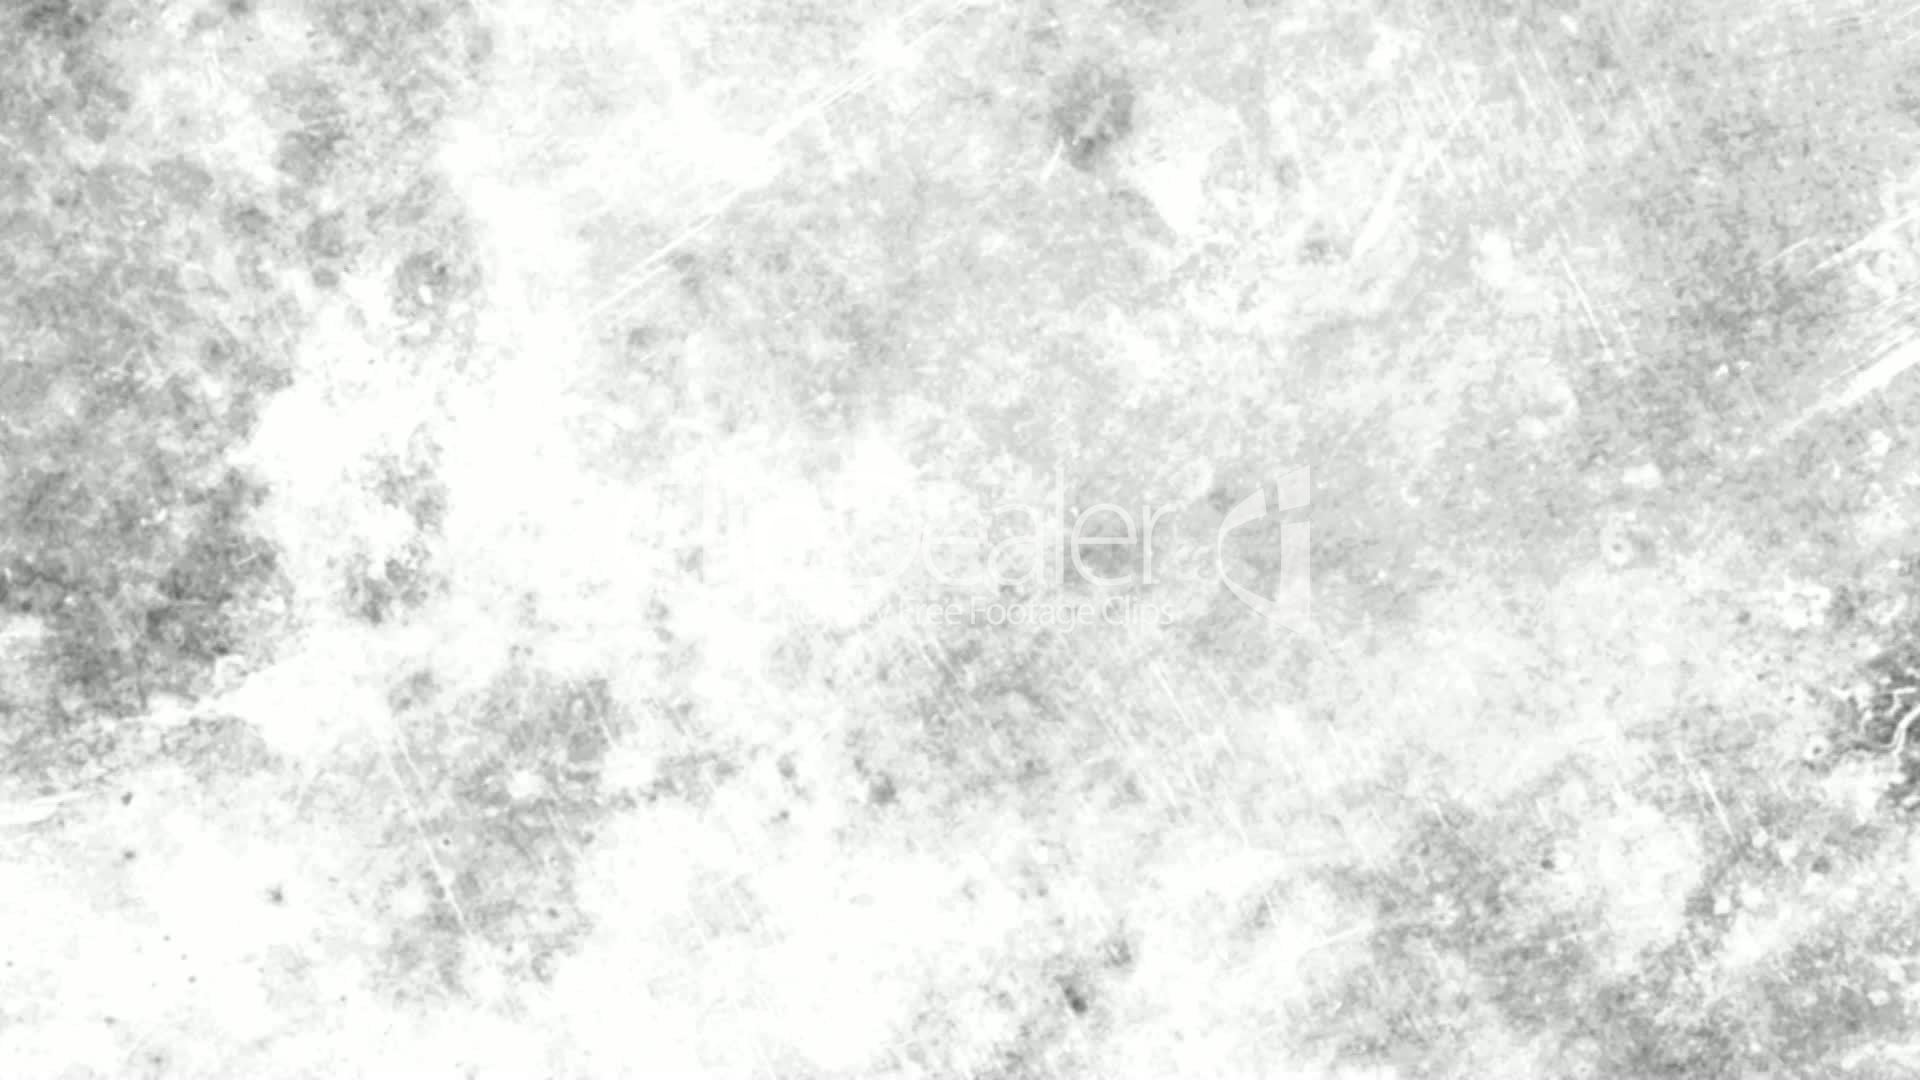 Film Dirt and Rust Texture: Royalty-free video and stock footage